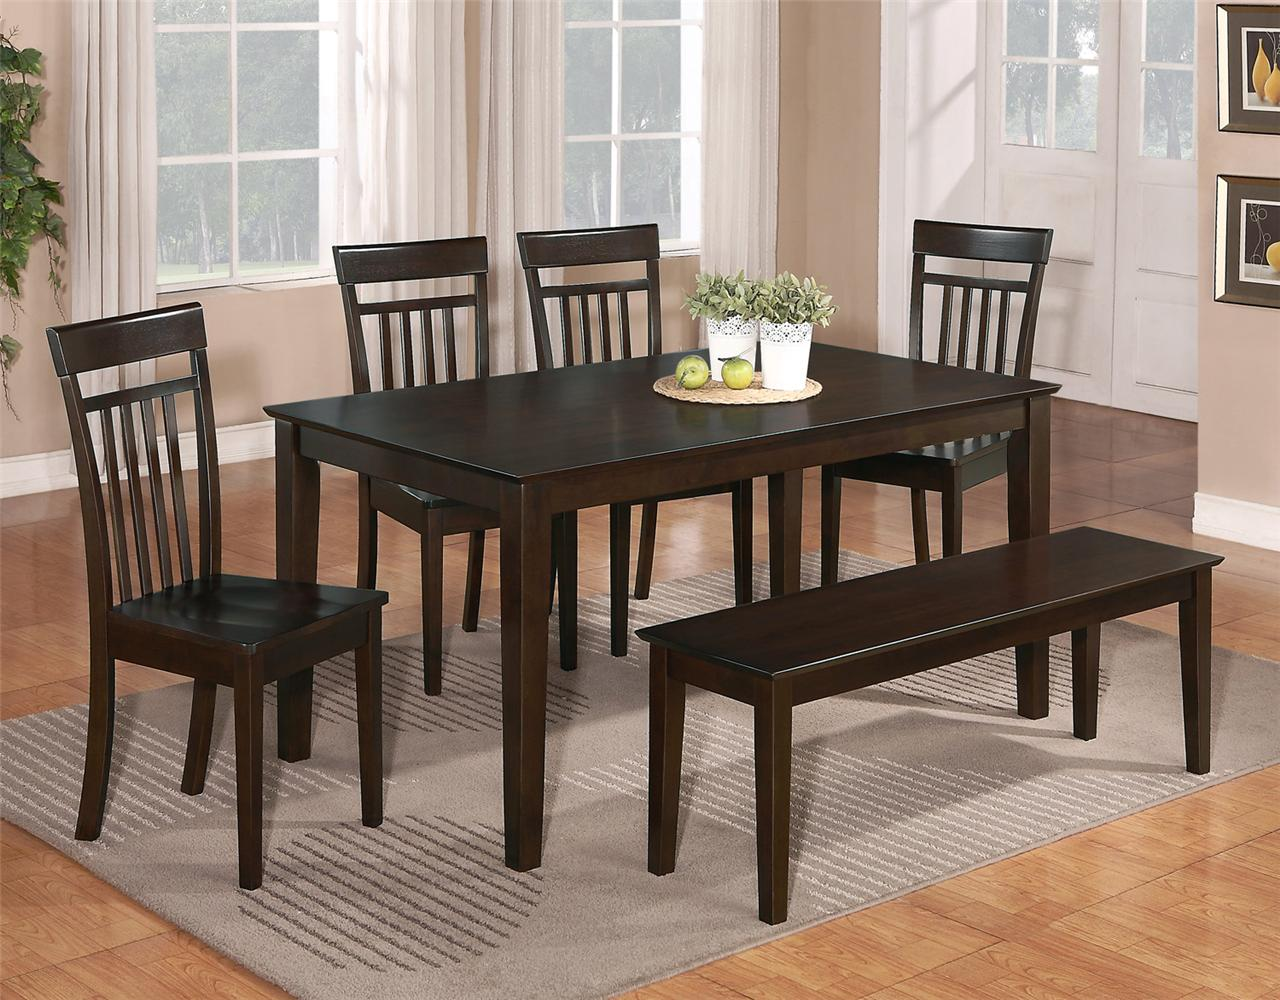 6 pc dinette kitchen dining room set table w 4 wood chair for Kitchen table sets with bench